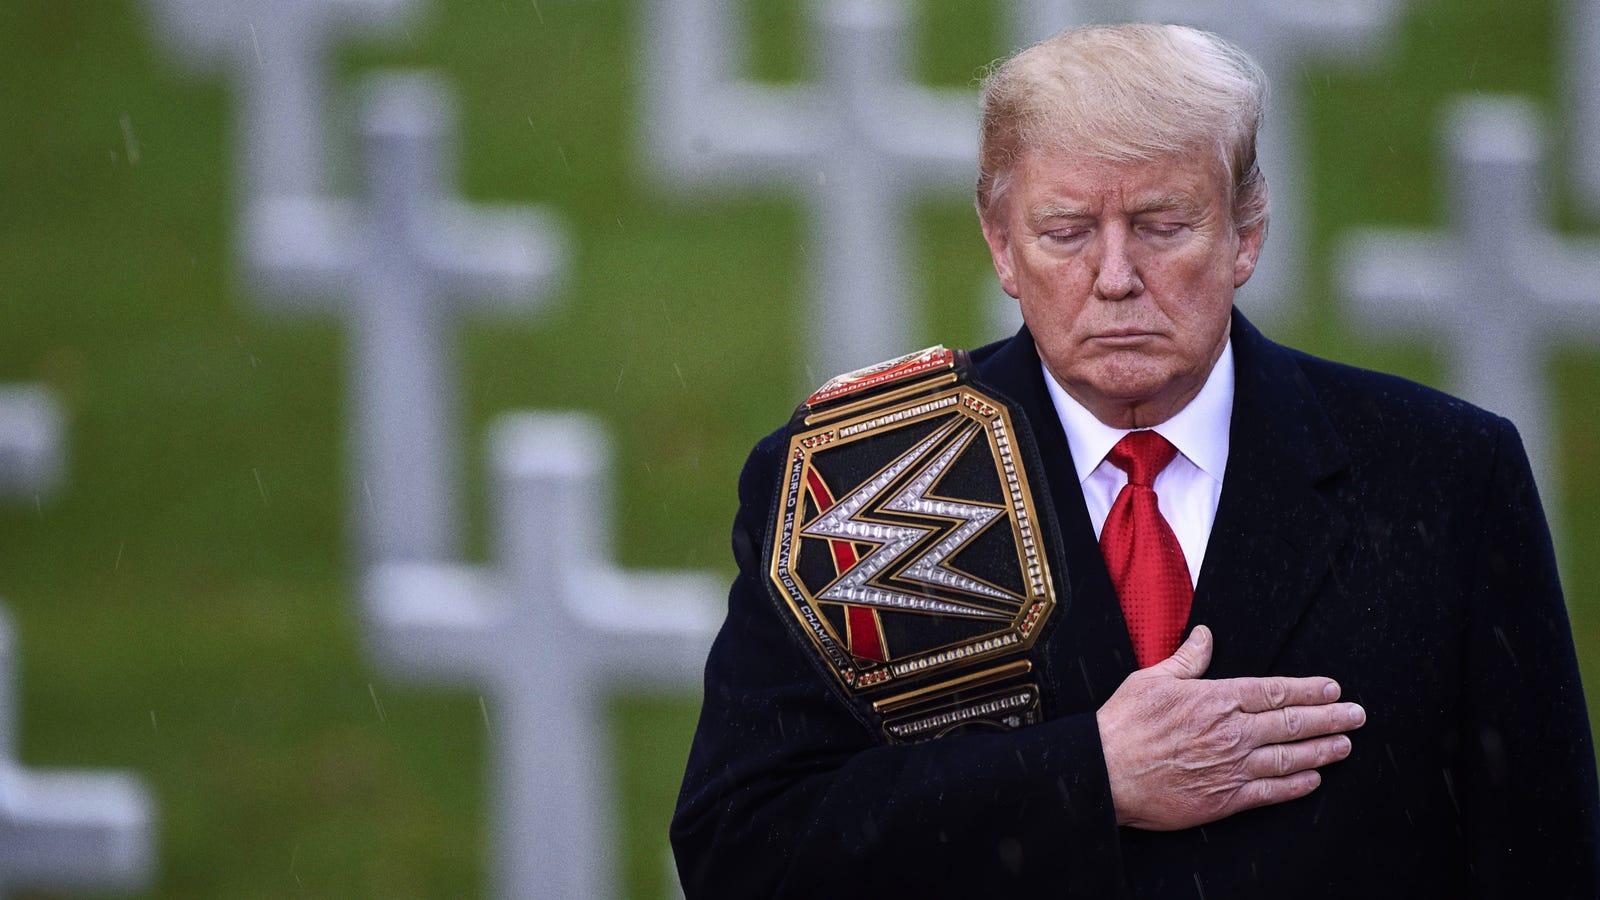 Trump Delivers Touching Tribute To Fallen Heroes Of WWE